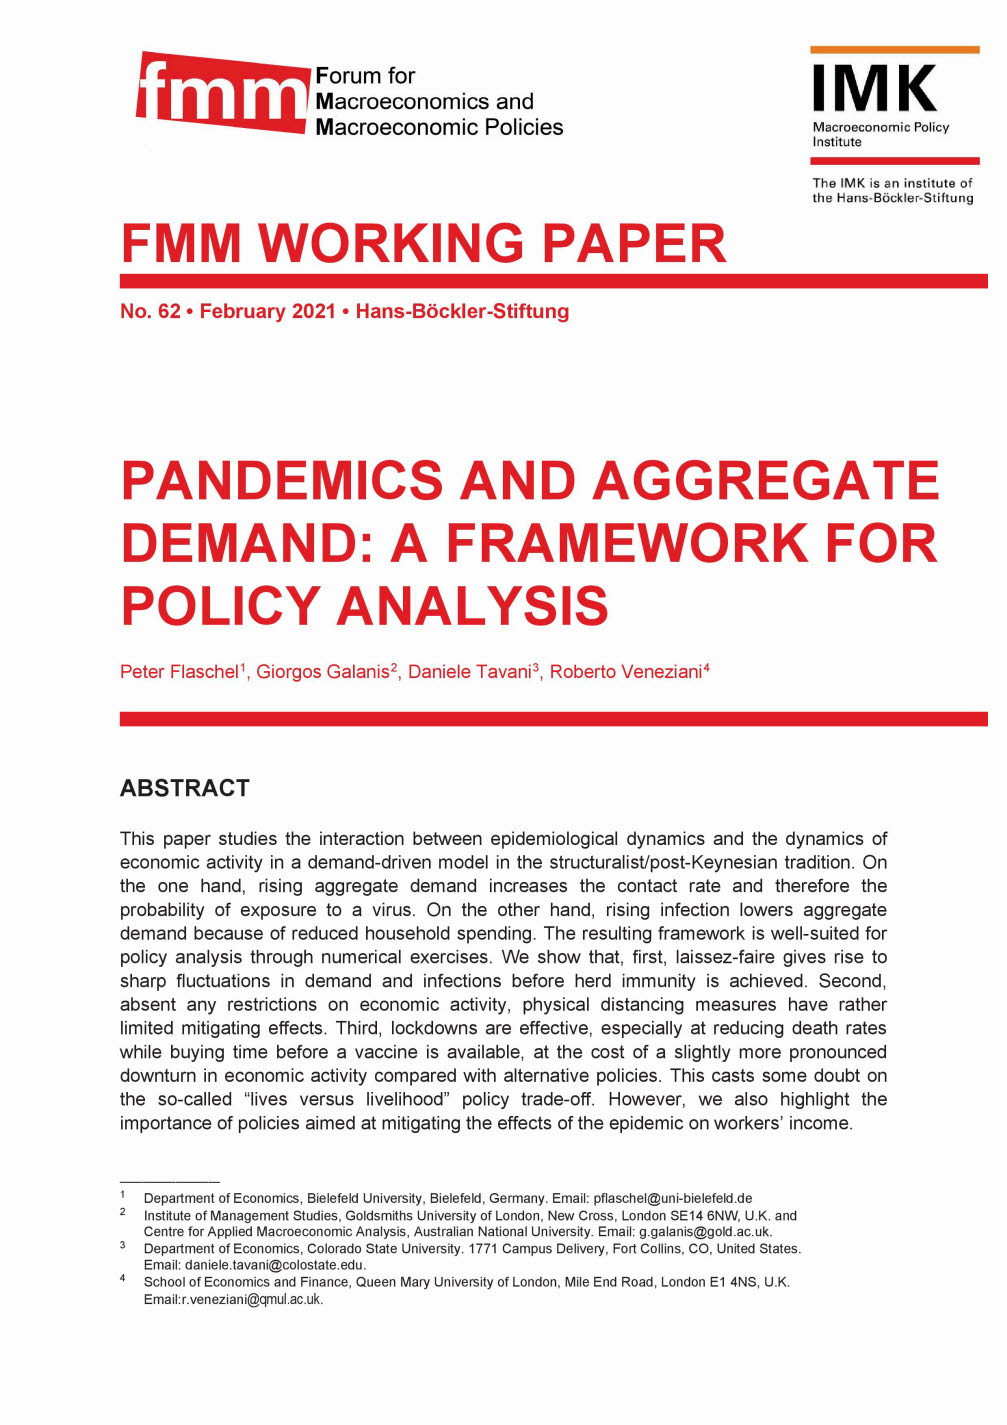 Pandemics and aggregate demand